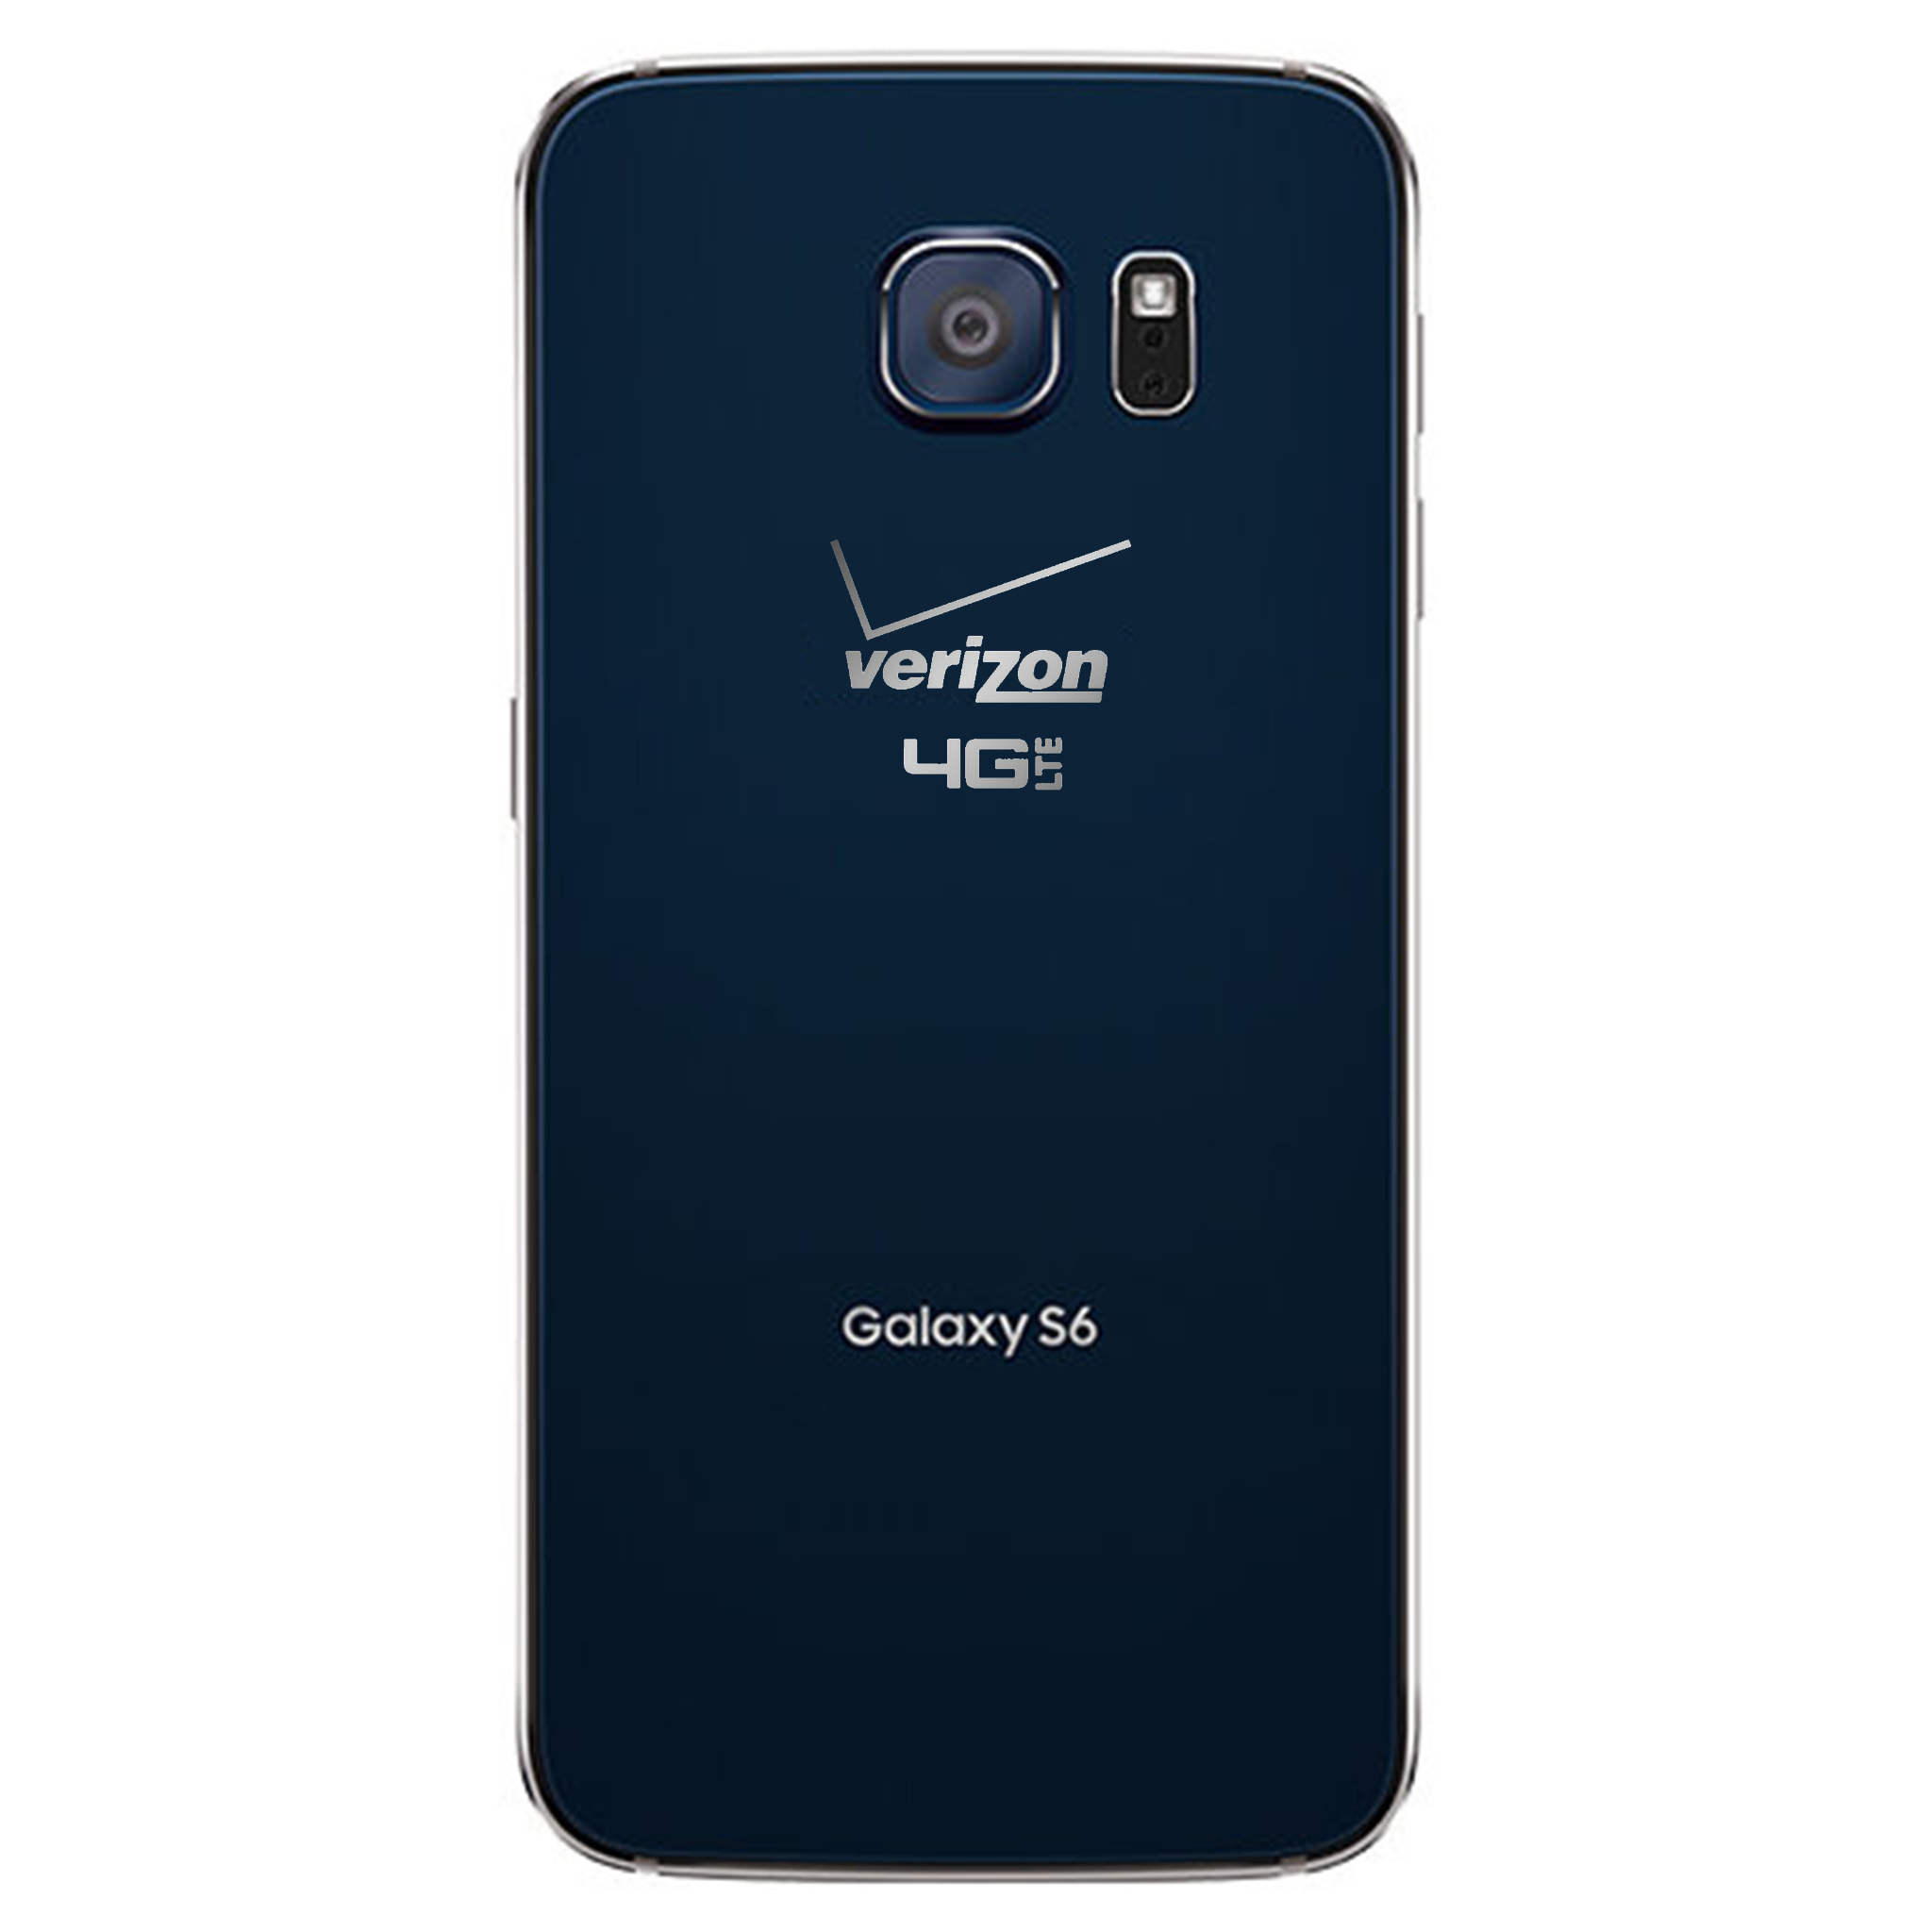 Galaxy s6 capacitive buttons the android soul - Refurbished Samsung Galaxy S6 For Straight Talk Verizon Tracfone Total Wireless Page Plus Net10 Walmart Com